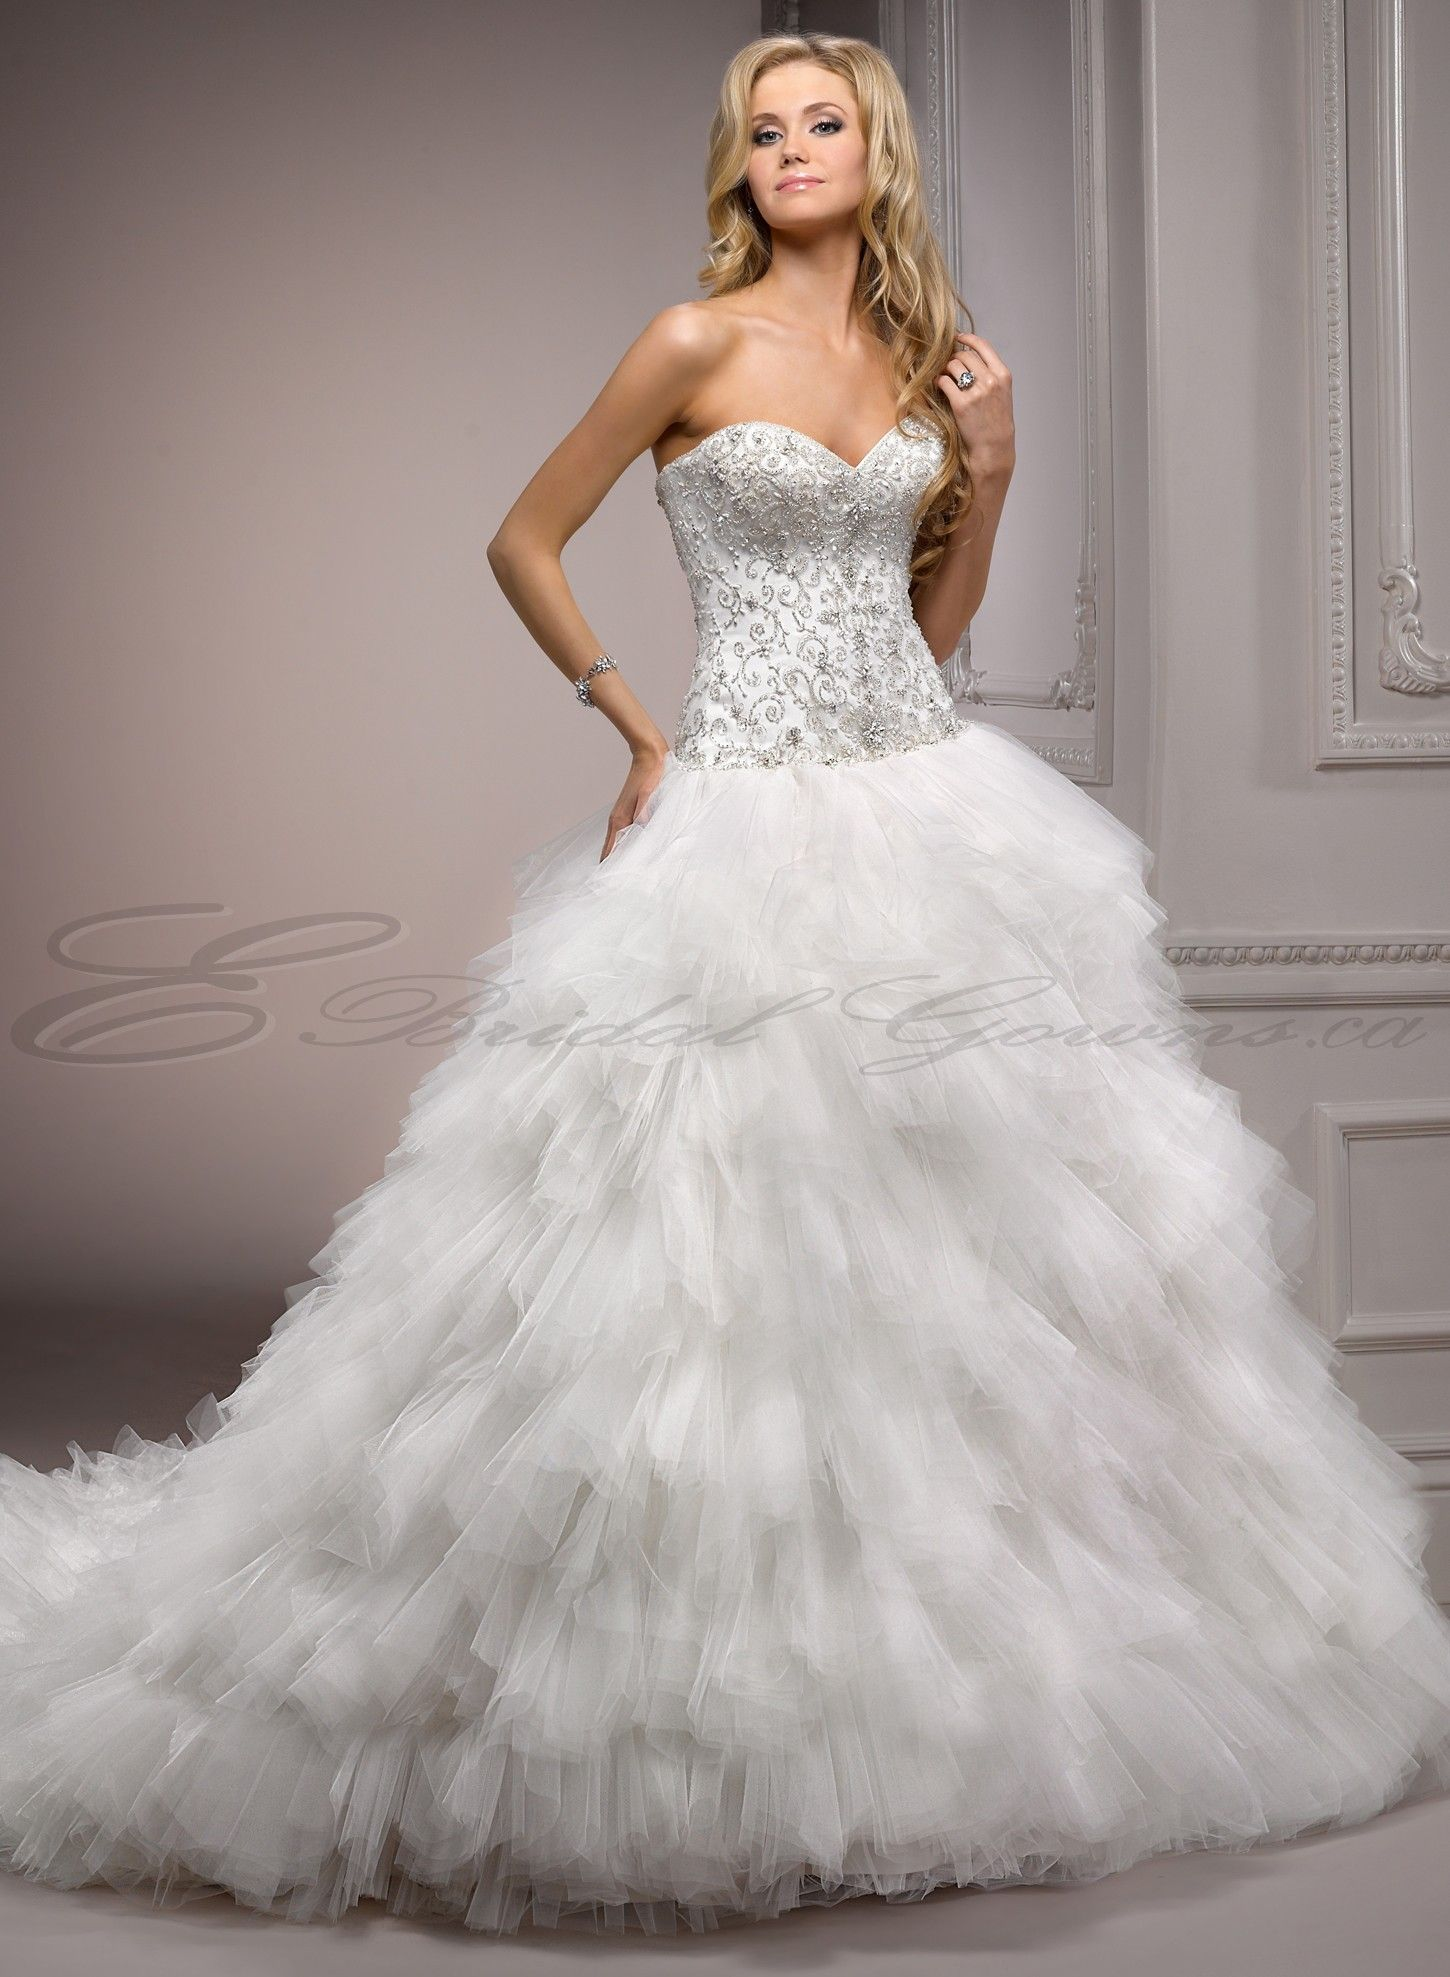 wedding dresses HD Wallpapers Download Free wedding dresses Tumblr ...